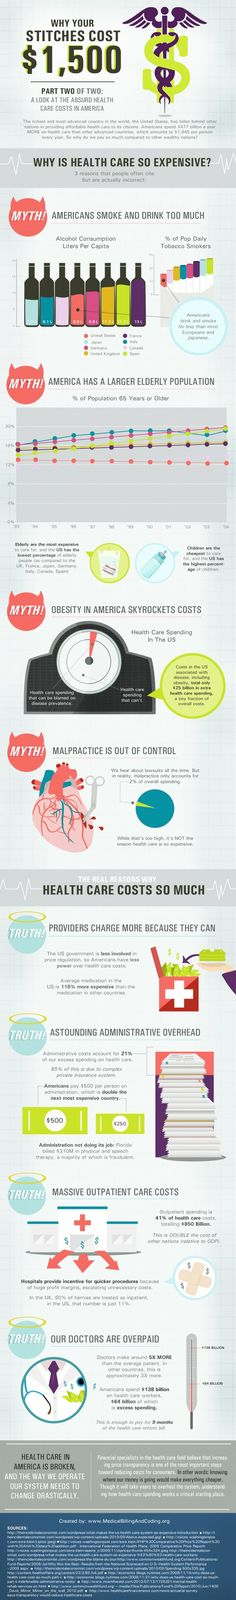 American Healthcare costs. Not completely sure how accurate some of these stats are, but interesting nonetheless. Helps Canadians understand how much things actually do cost.